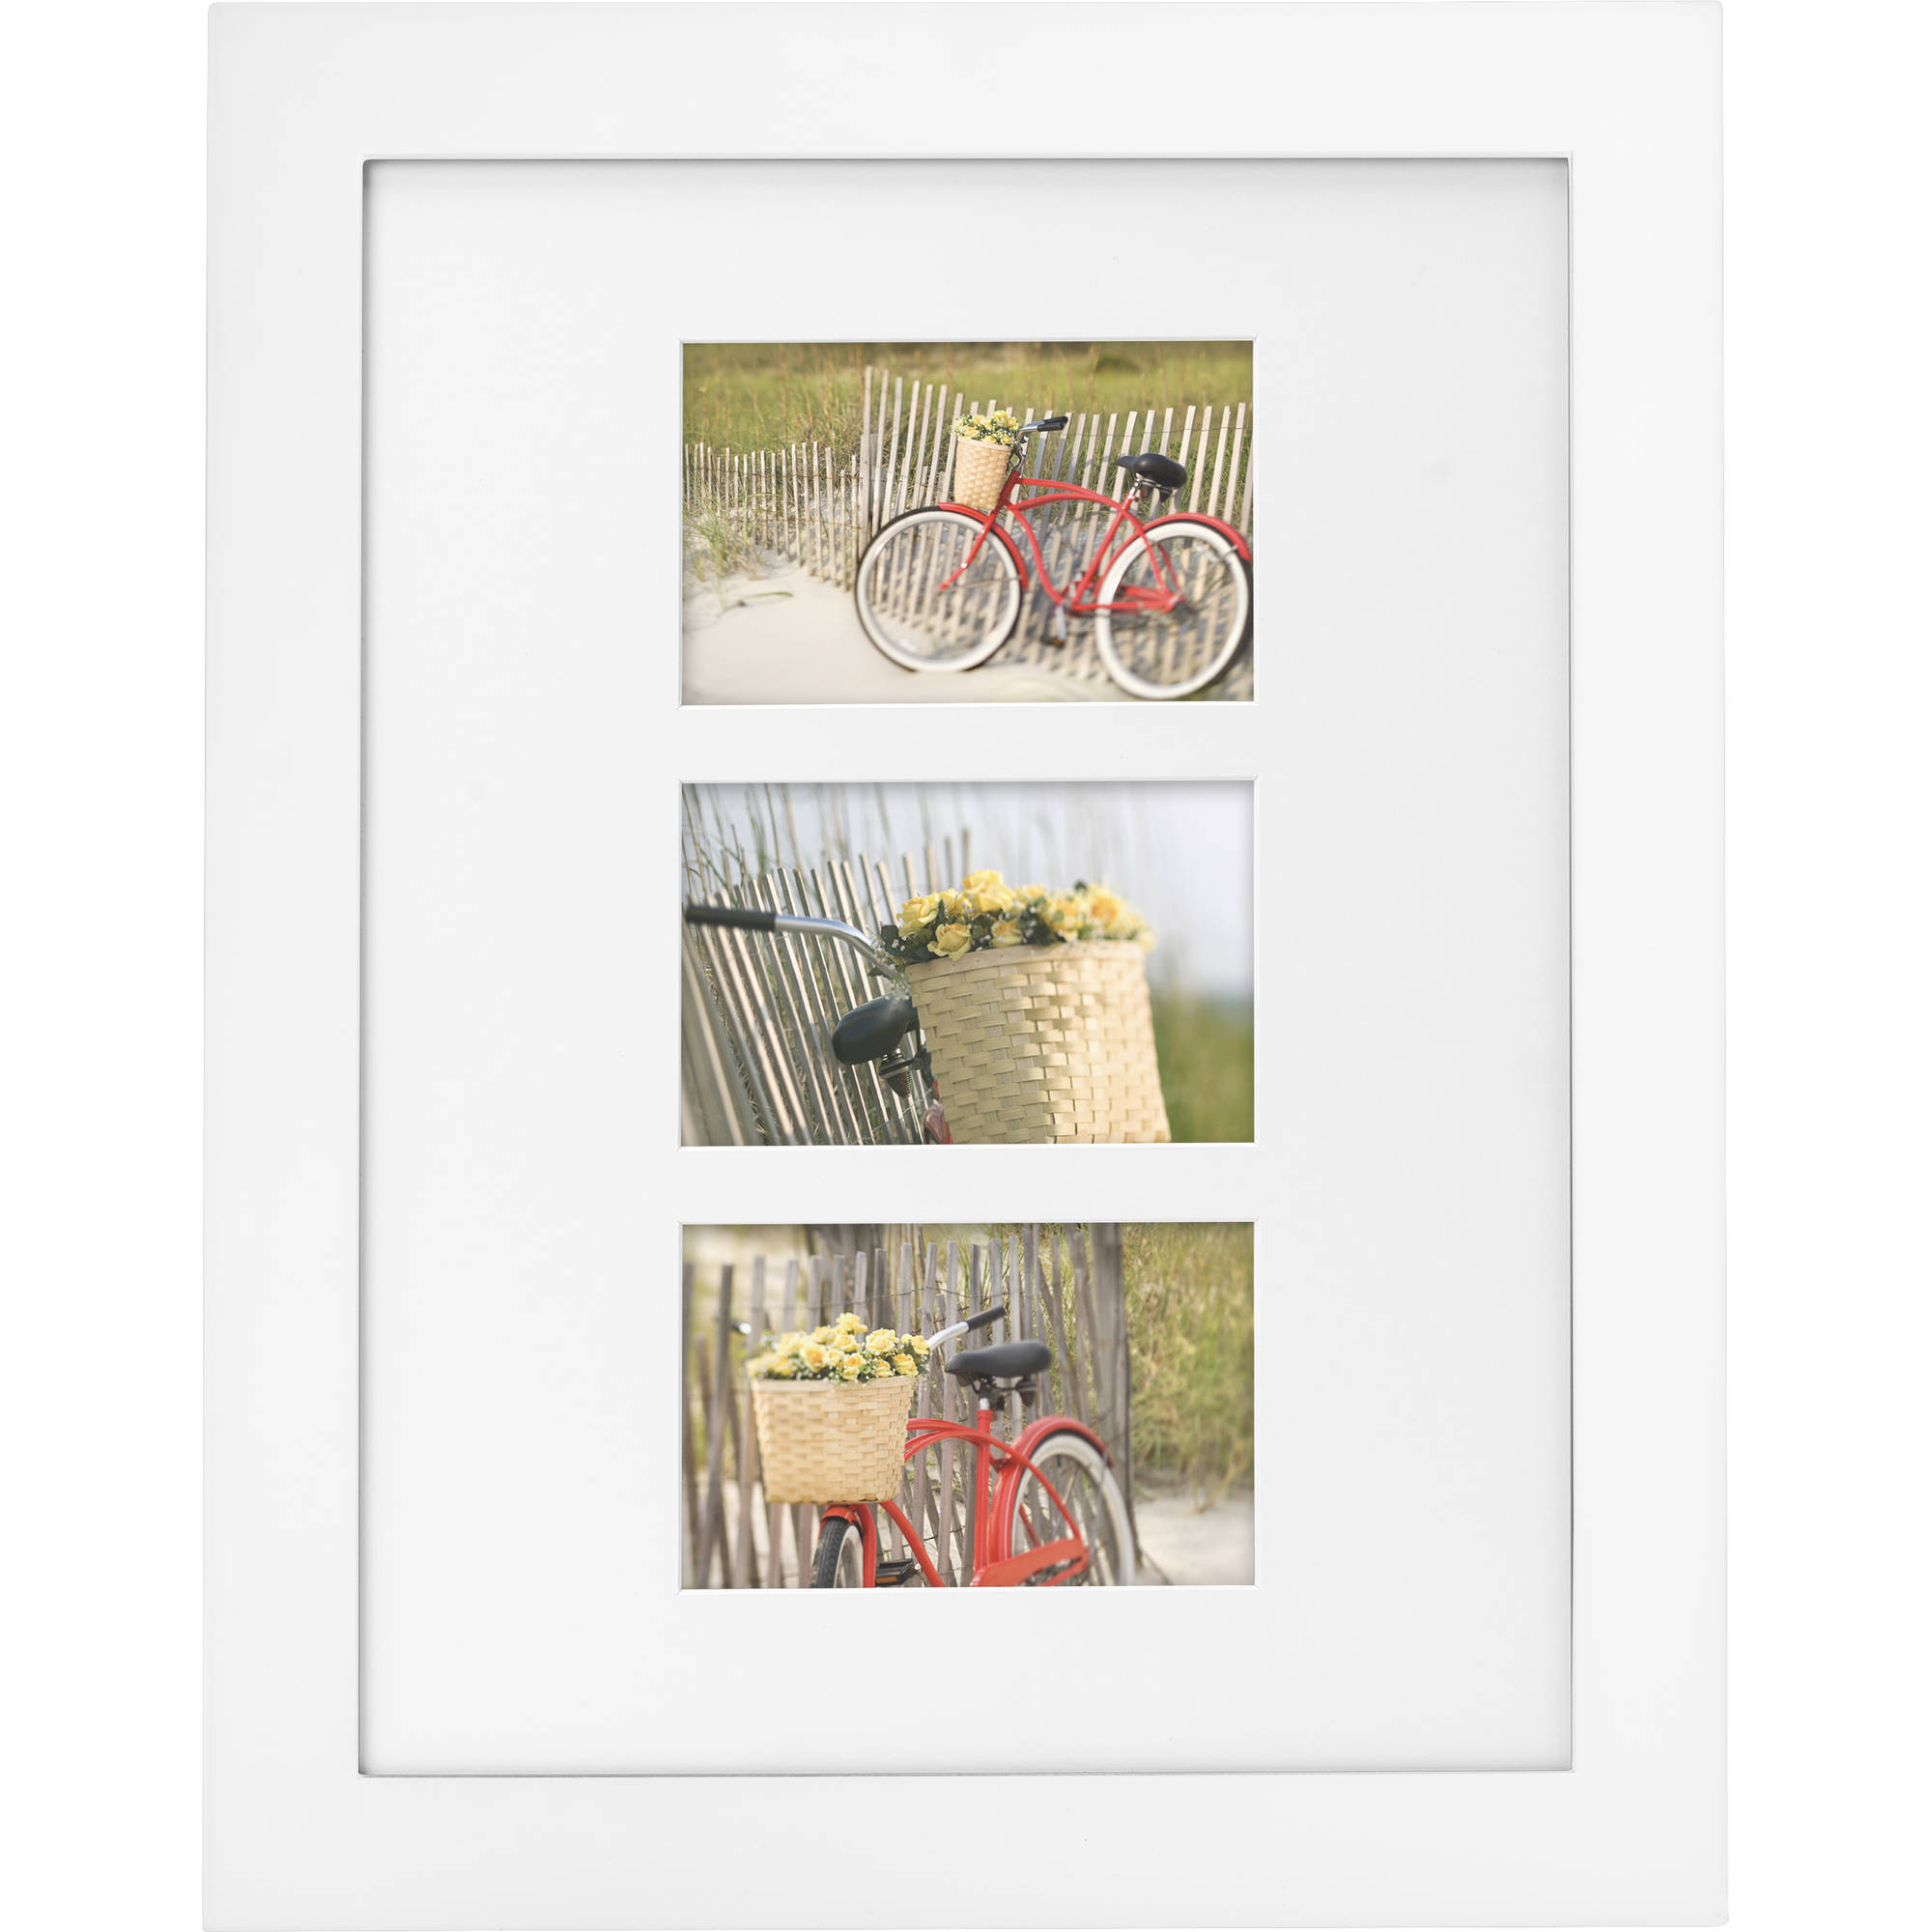 "Mainstays Museum 12"" x 16"" Matted to Three 4"" x 6"" Openings Picture Frame, White"